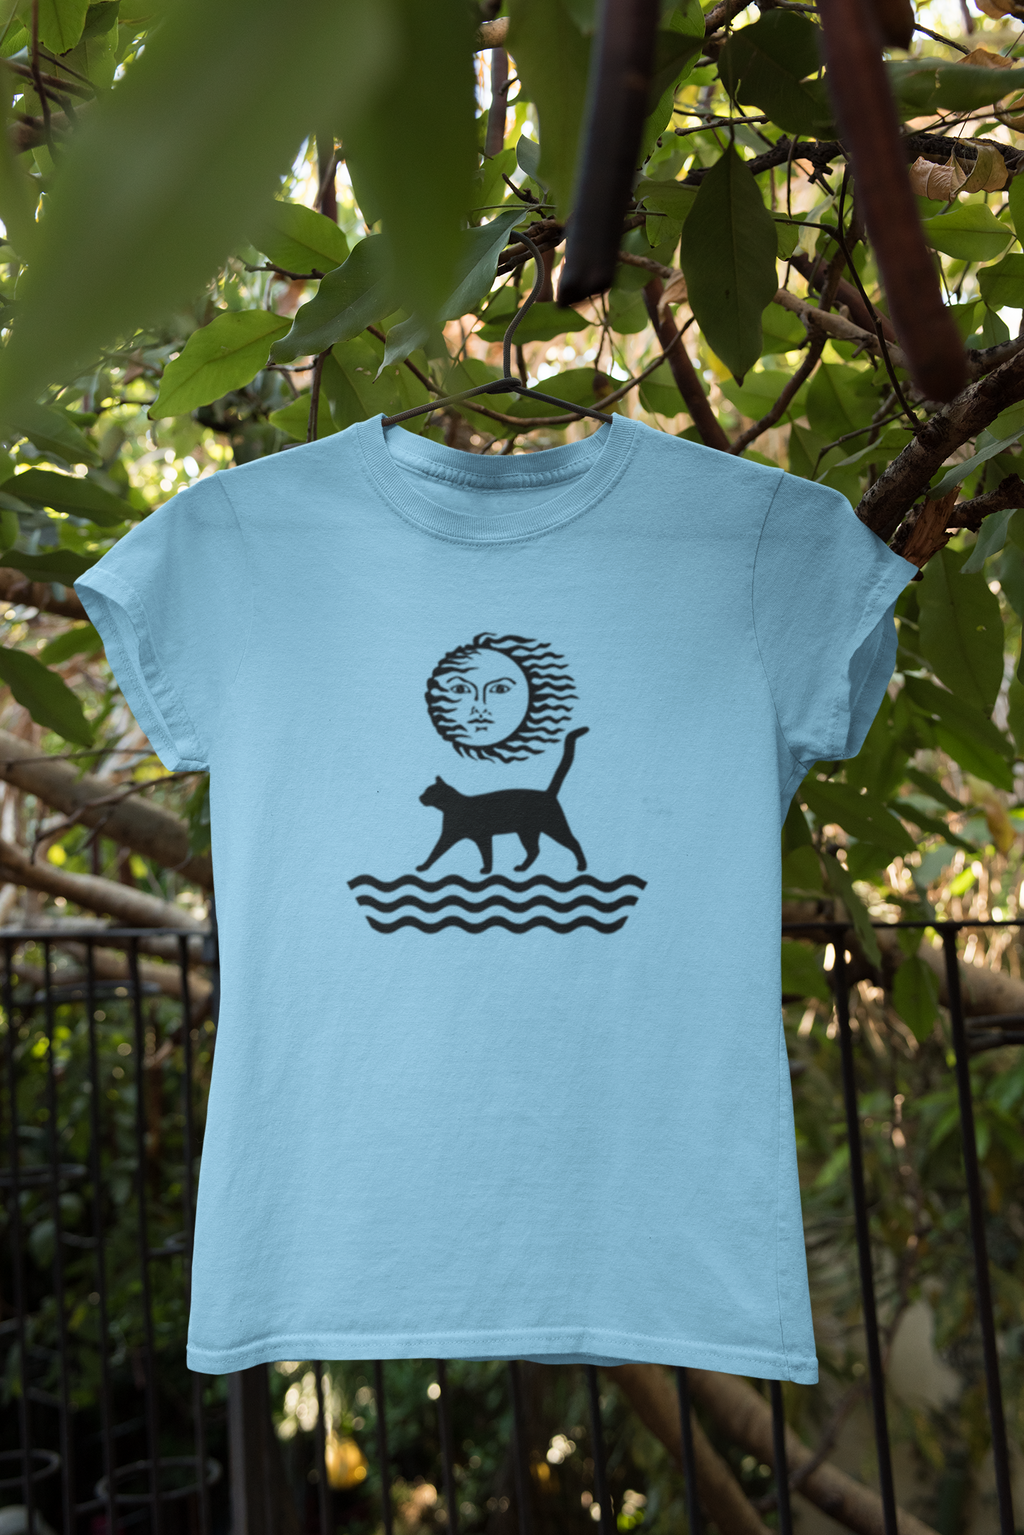 Powder blue organic cotton graphic T-shirt with image of cat and sun